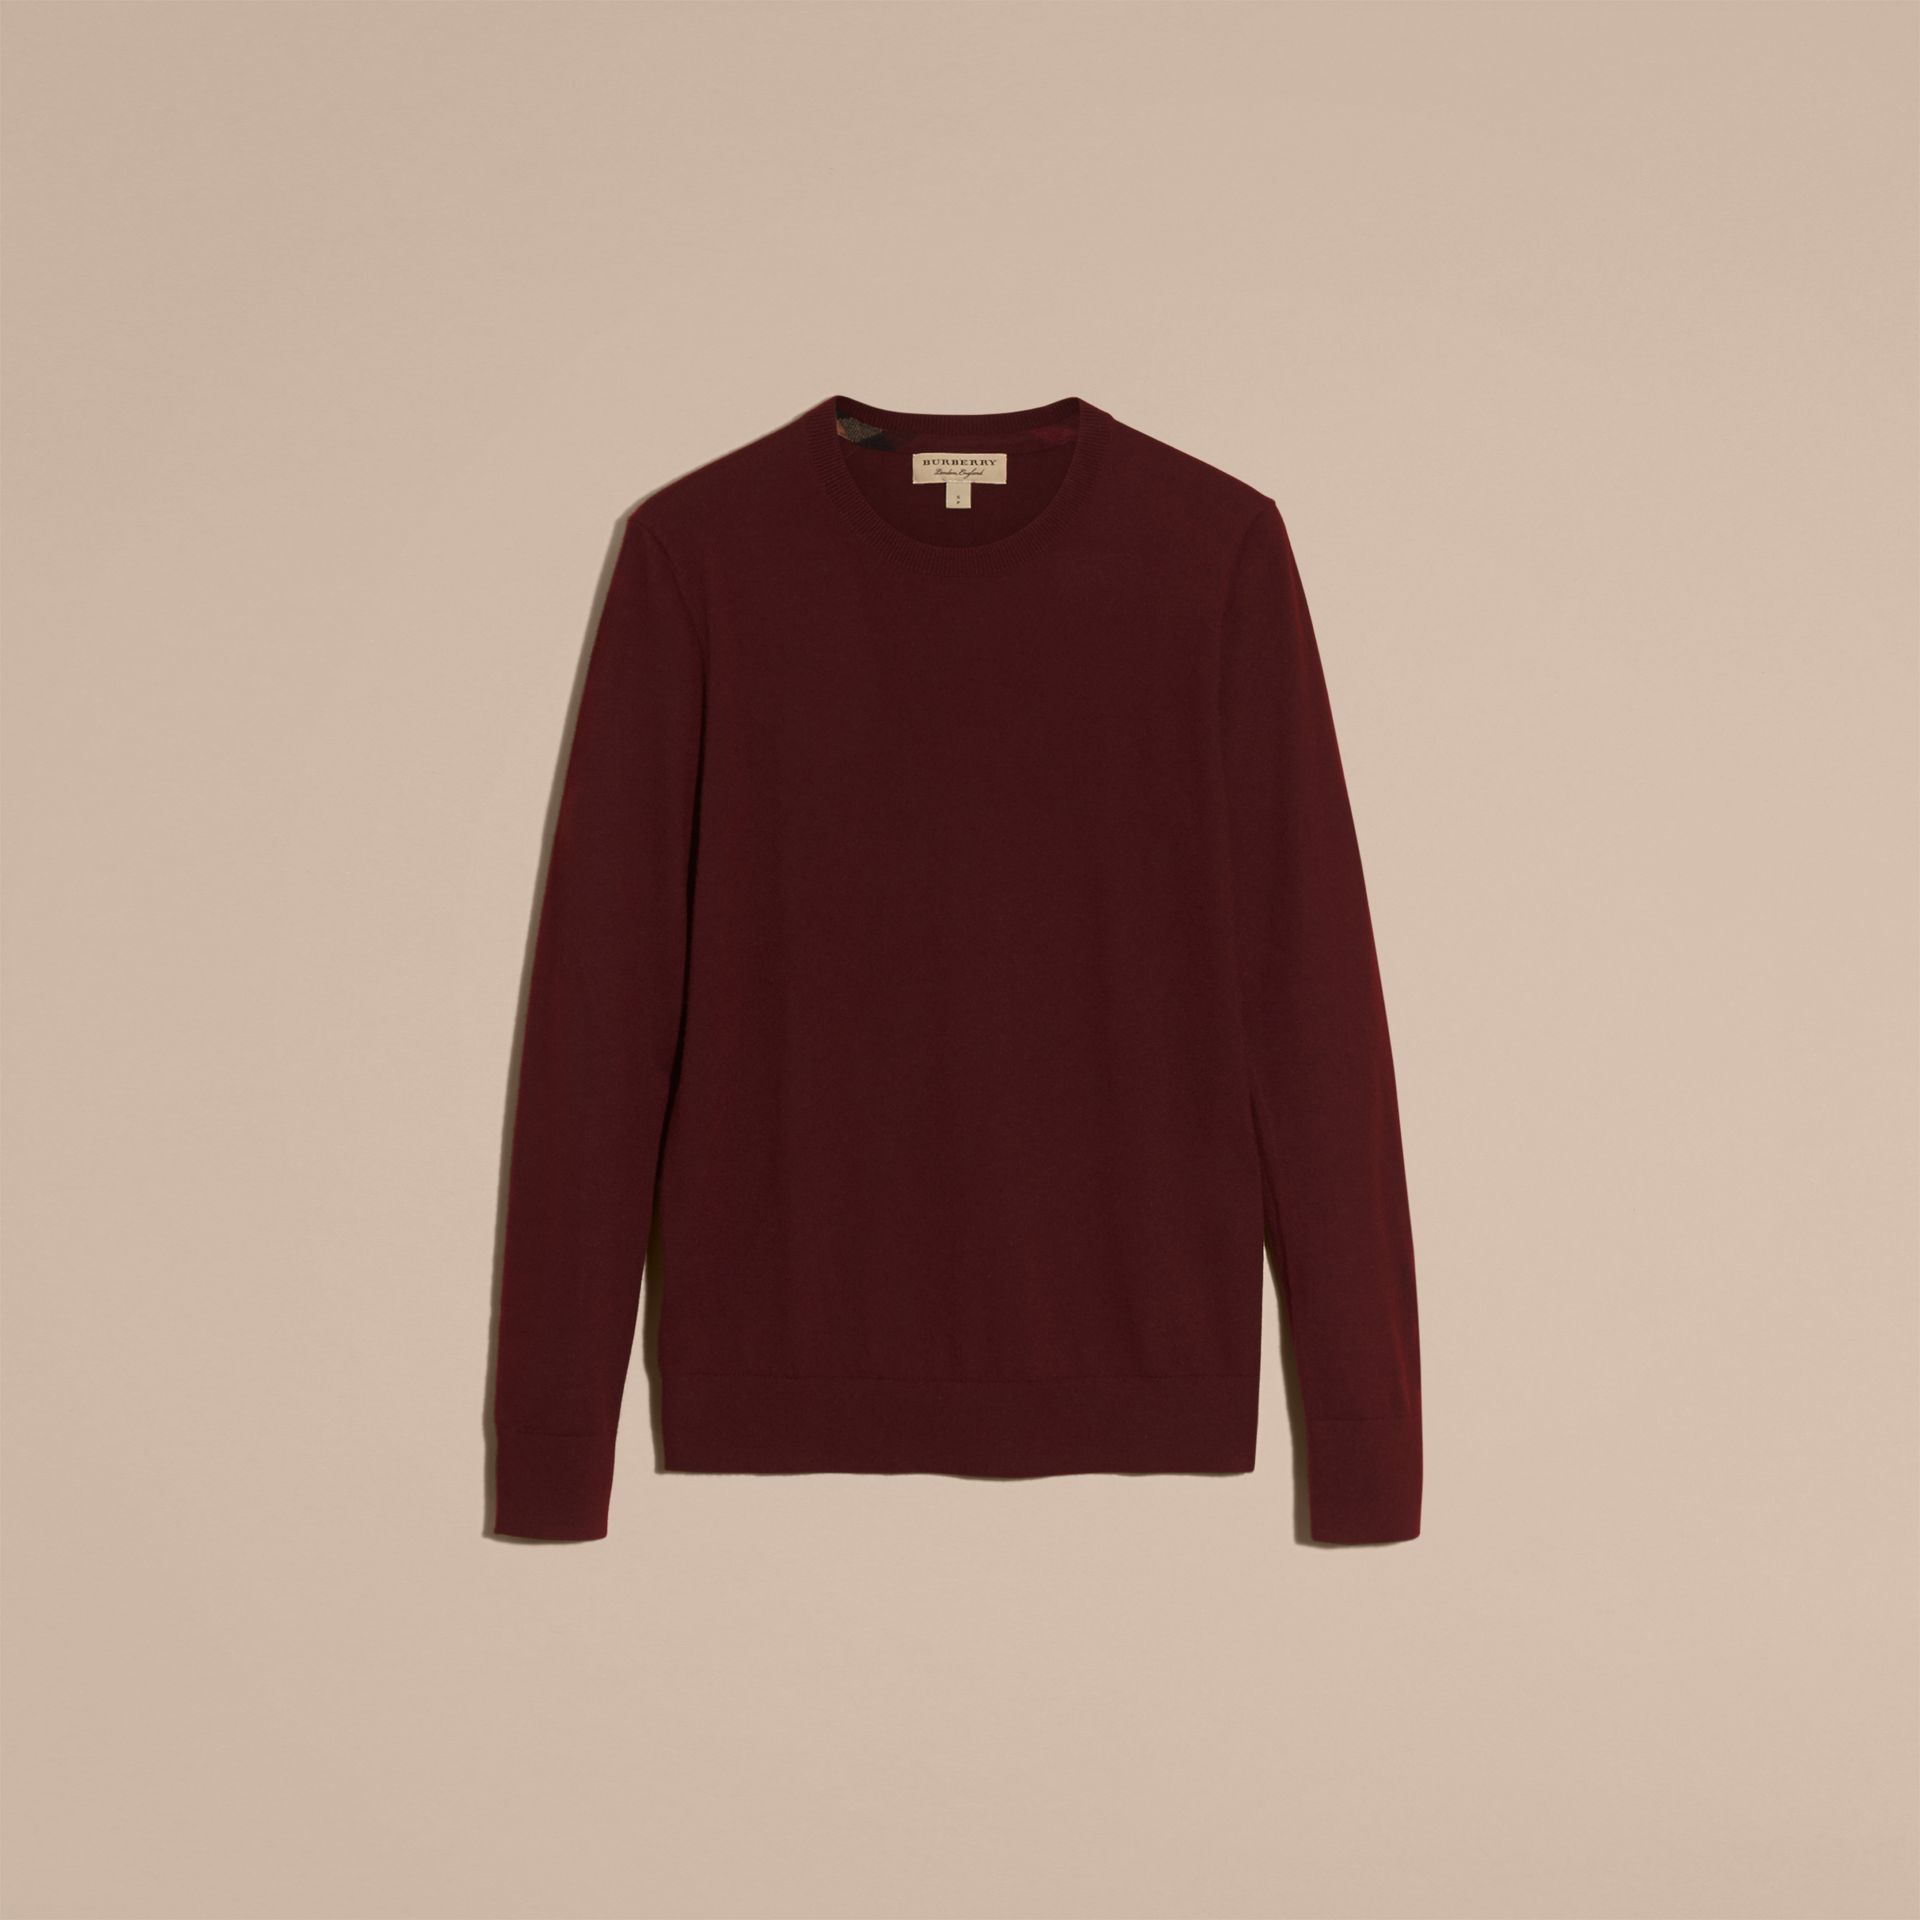 Deep claret Lightweight Crew Neck Cashmere Sweater with Check Trim Deep Claret - gallery image 4